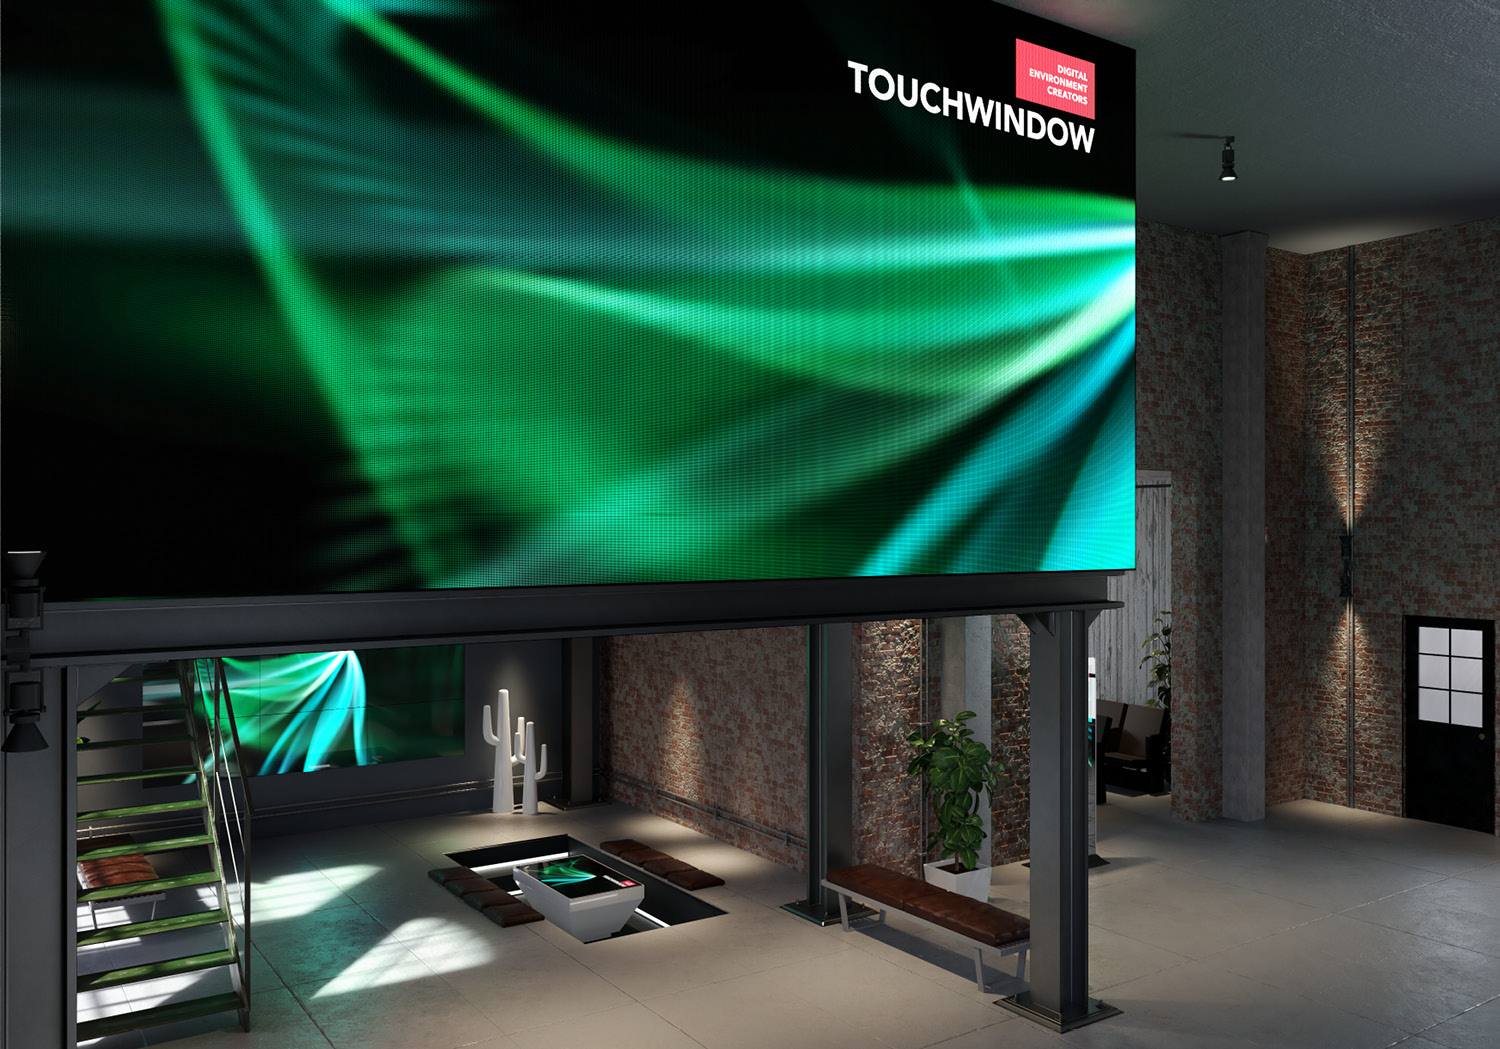 Touchwindow led-wall